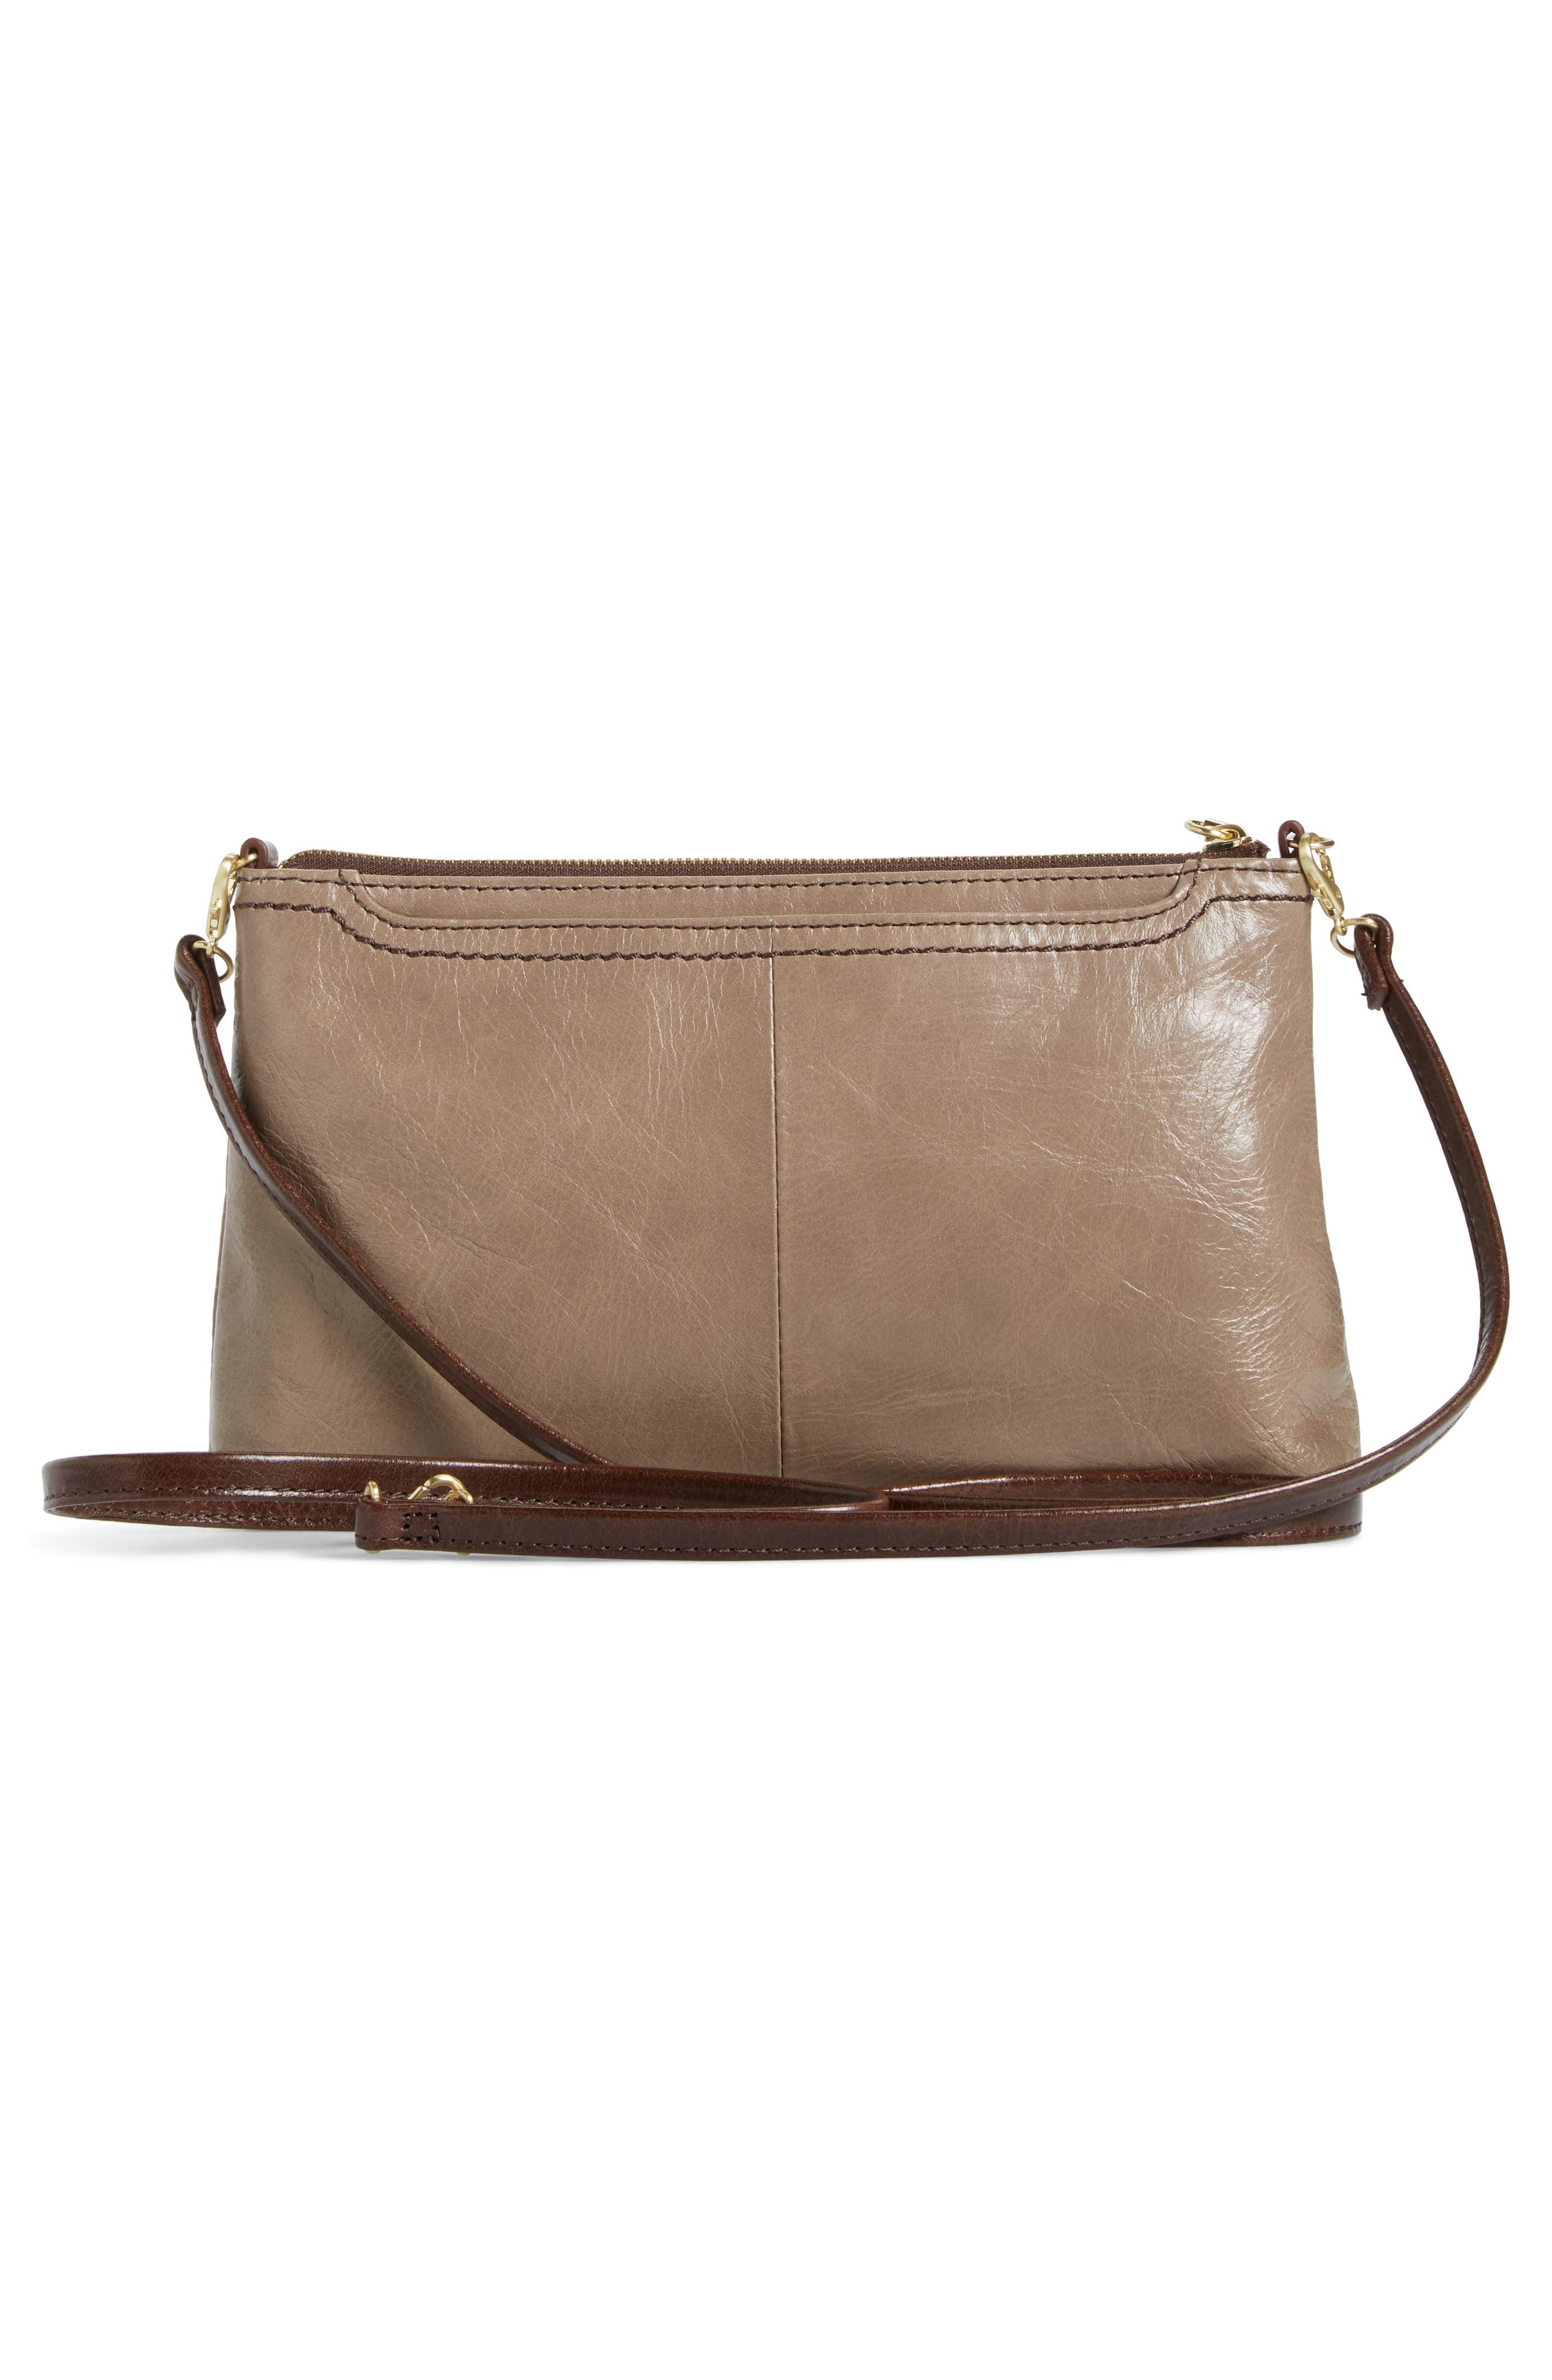 'Darcy' Leather Crossbody Bag,                             Alternate thumbnail 59, color,